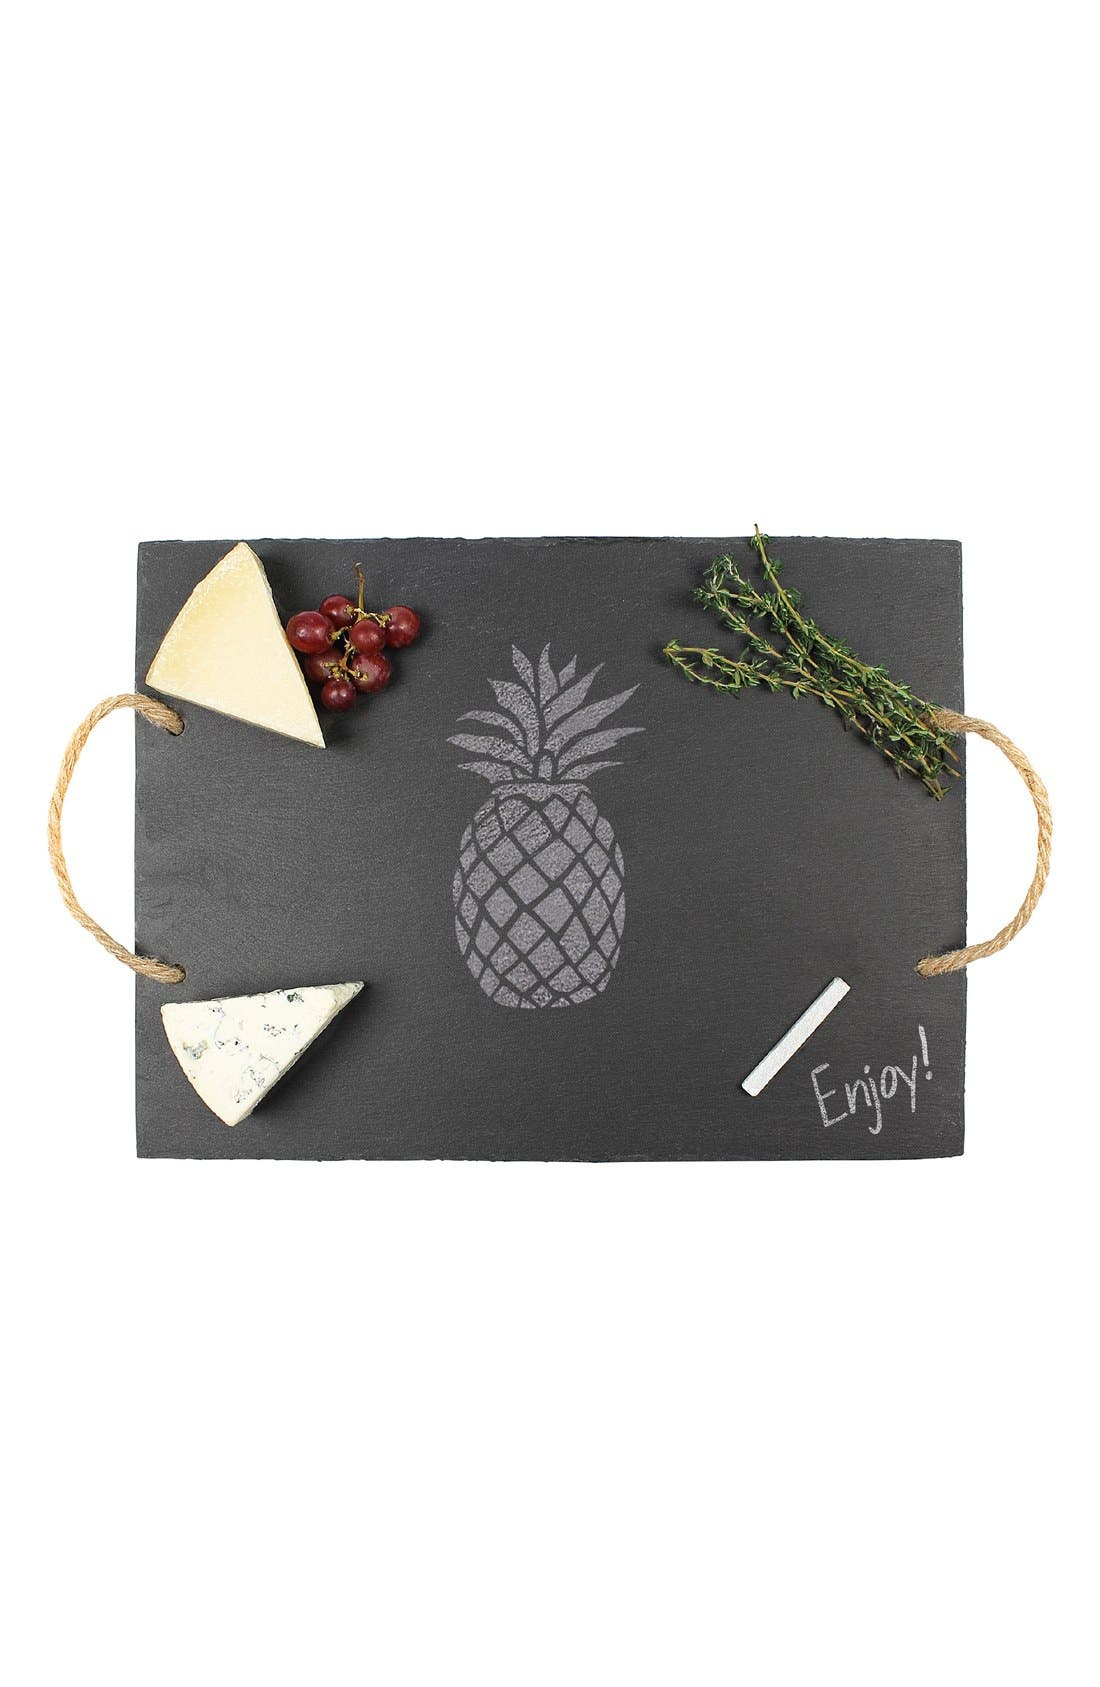 Pineapple Slate Serving Tray,                             Alternate thumbnail 4, color,                             020